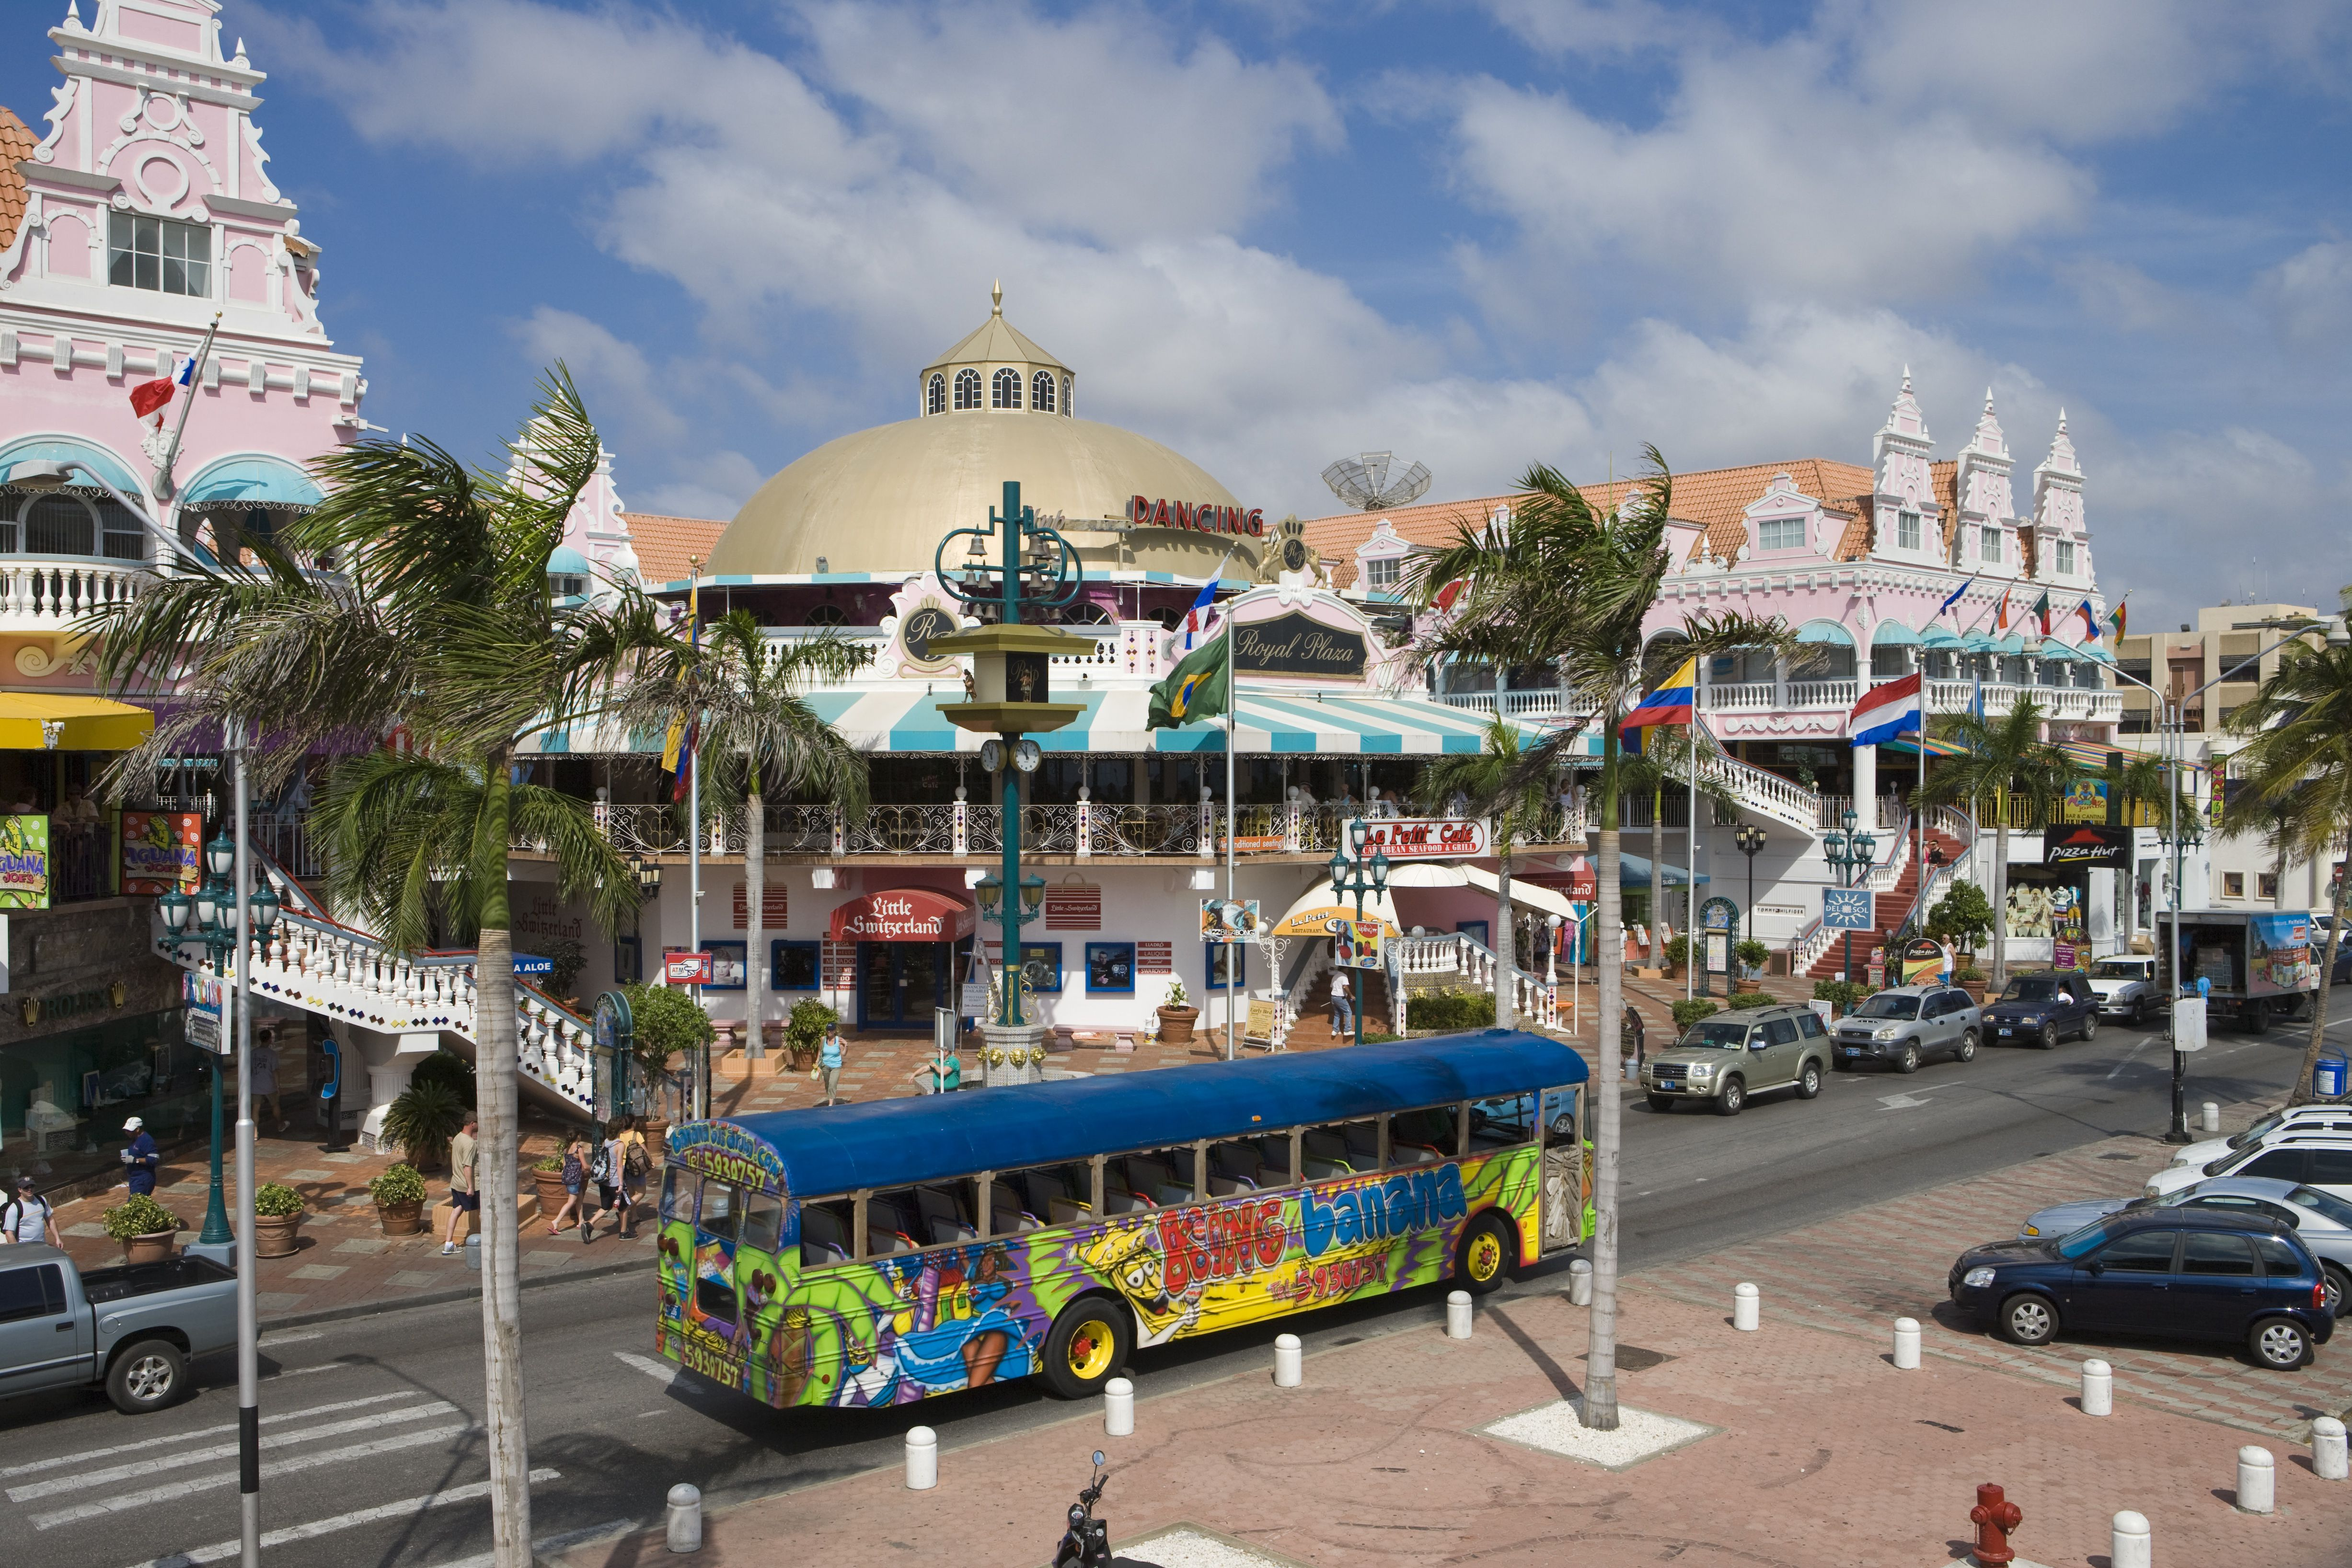 Street scene with colourful bus and Dutch influenced architecture.